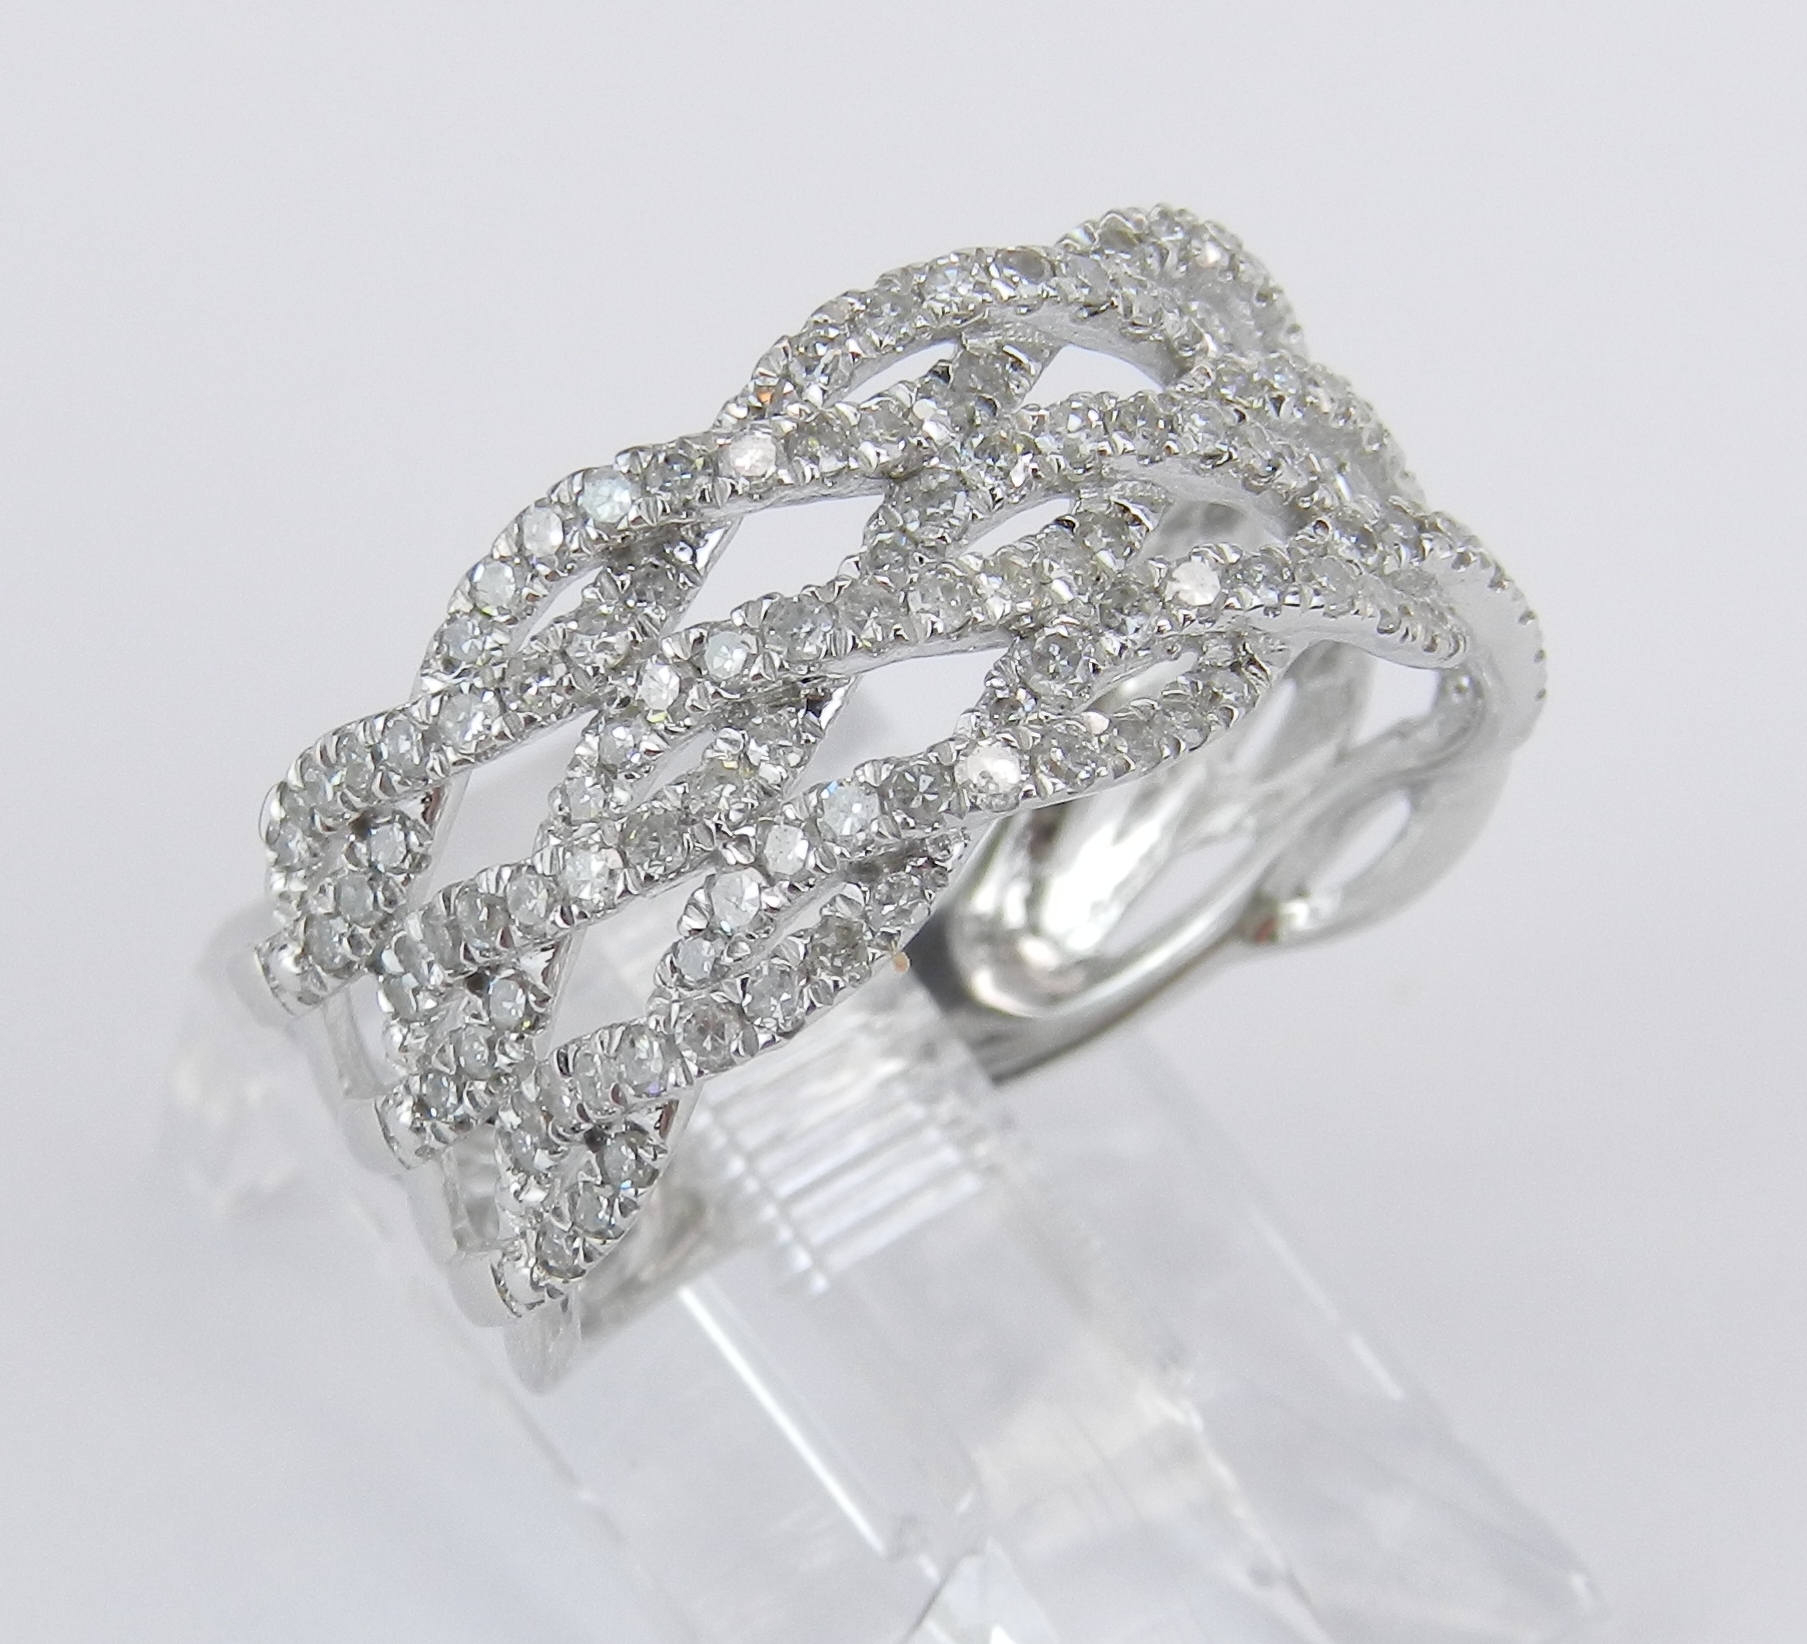 14K White Gold Diamond Crossover Wedding Ring Multi Row Throughout Latest Diamond Five Row Anniversary Rings In White Gold (View 8 of 25)